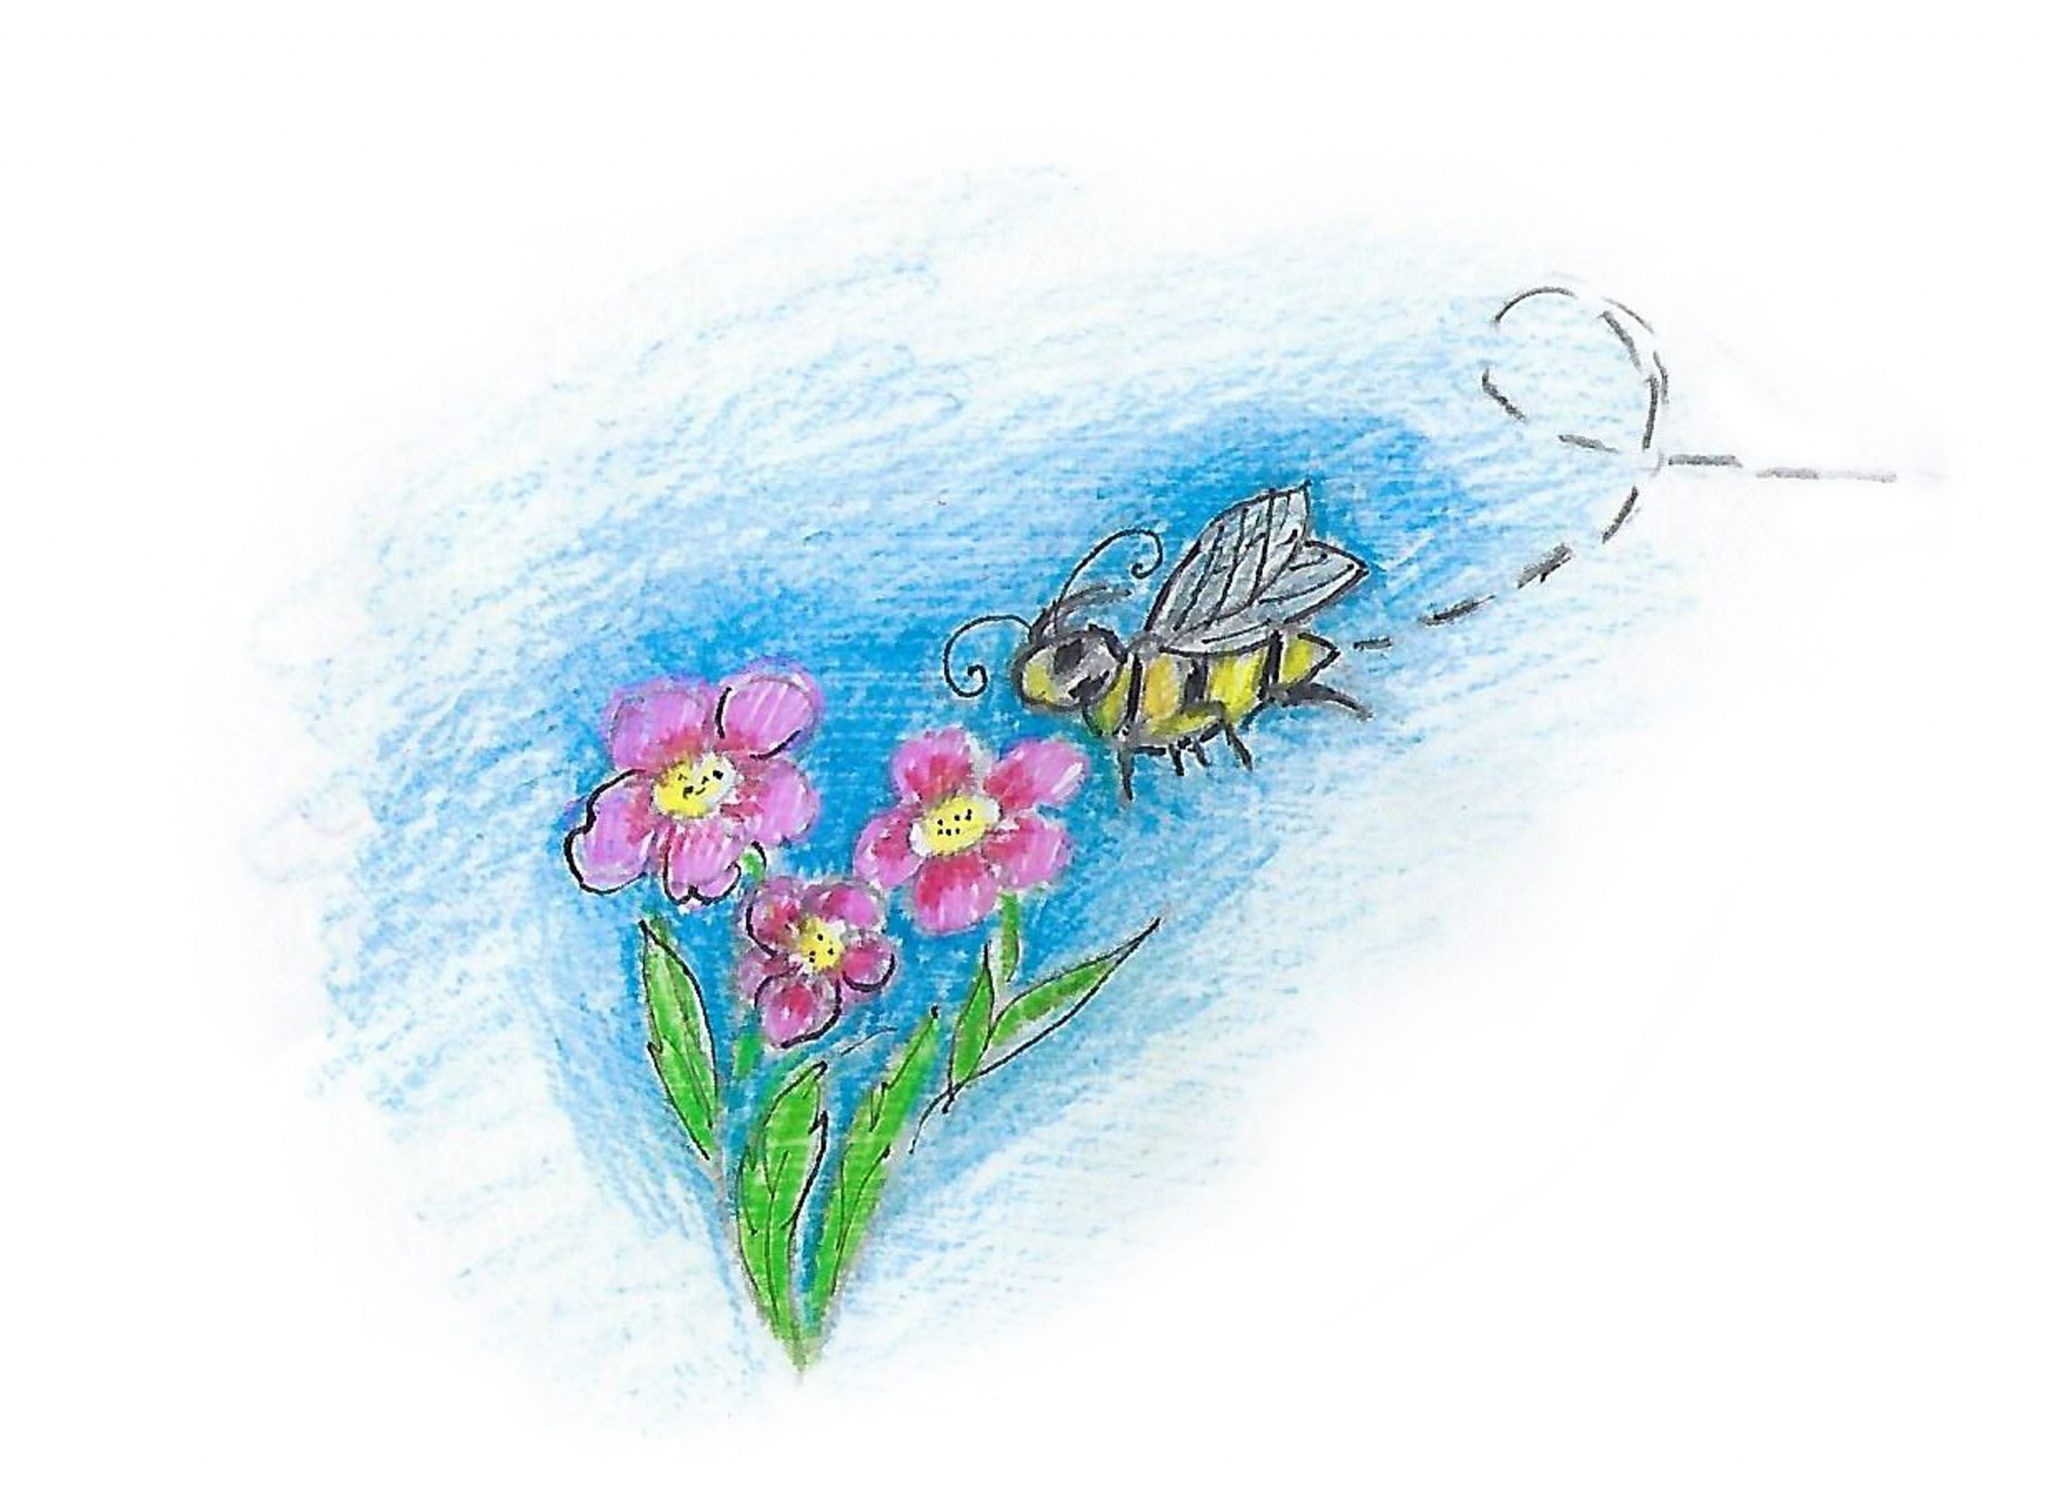 Пчела ищет цветы. — The bee searches for flowers.